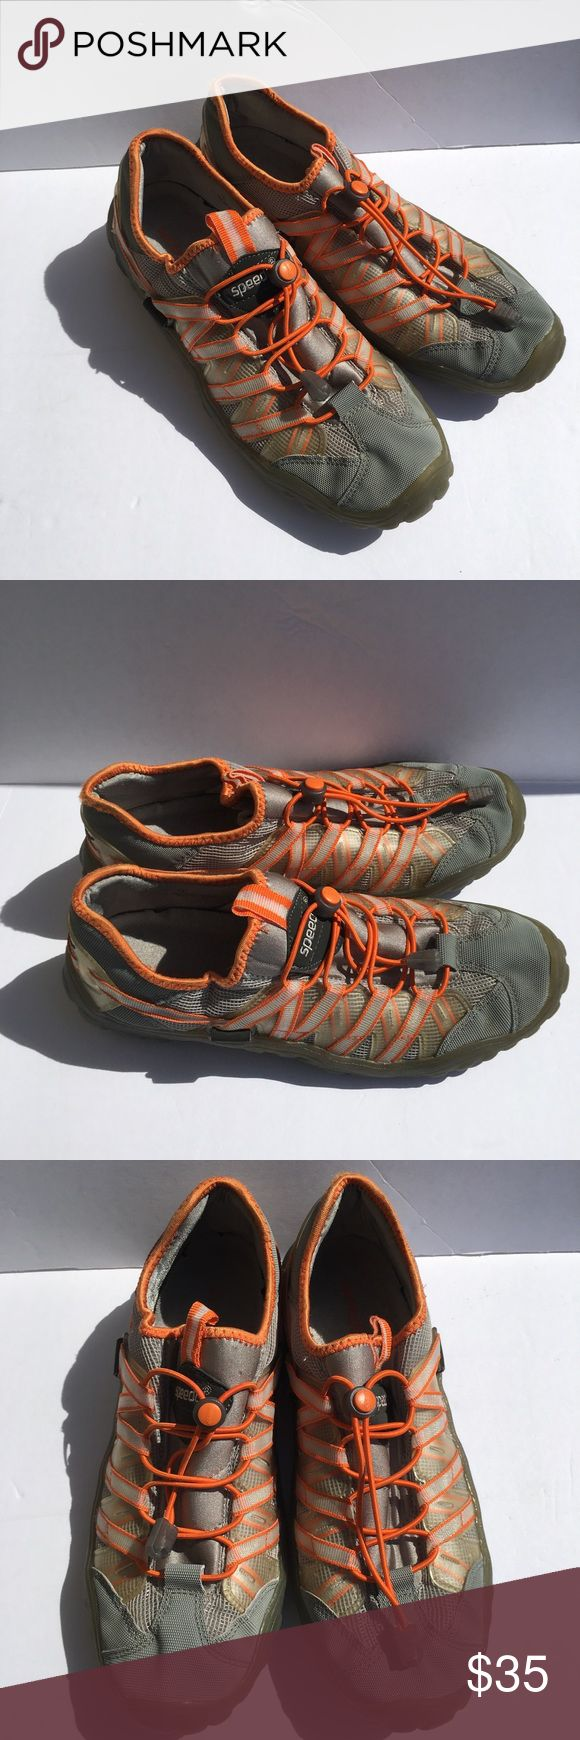 Speedo Mens Shoes Size 9 Water Sneaker Gray Orange This listing is for a pair of men's Speedo water shoes. They are size 9 and are gray with orange accents.  The laces are adjusted via pull tab for easy on/off. Speedo Shoes